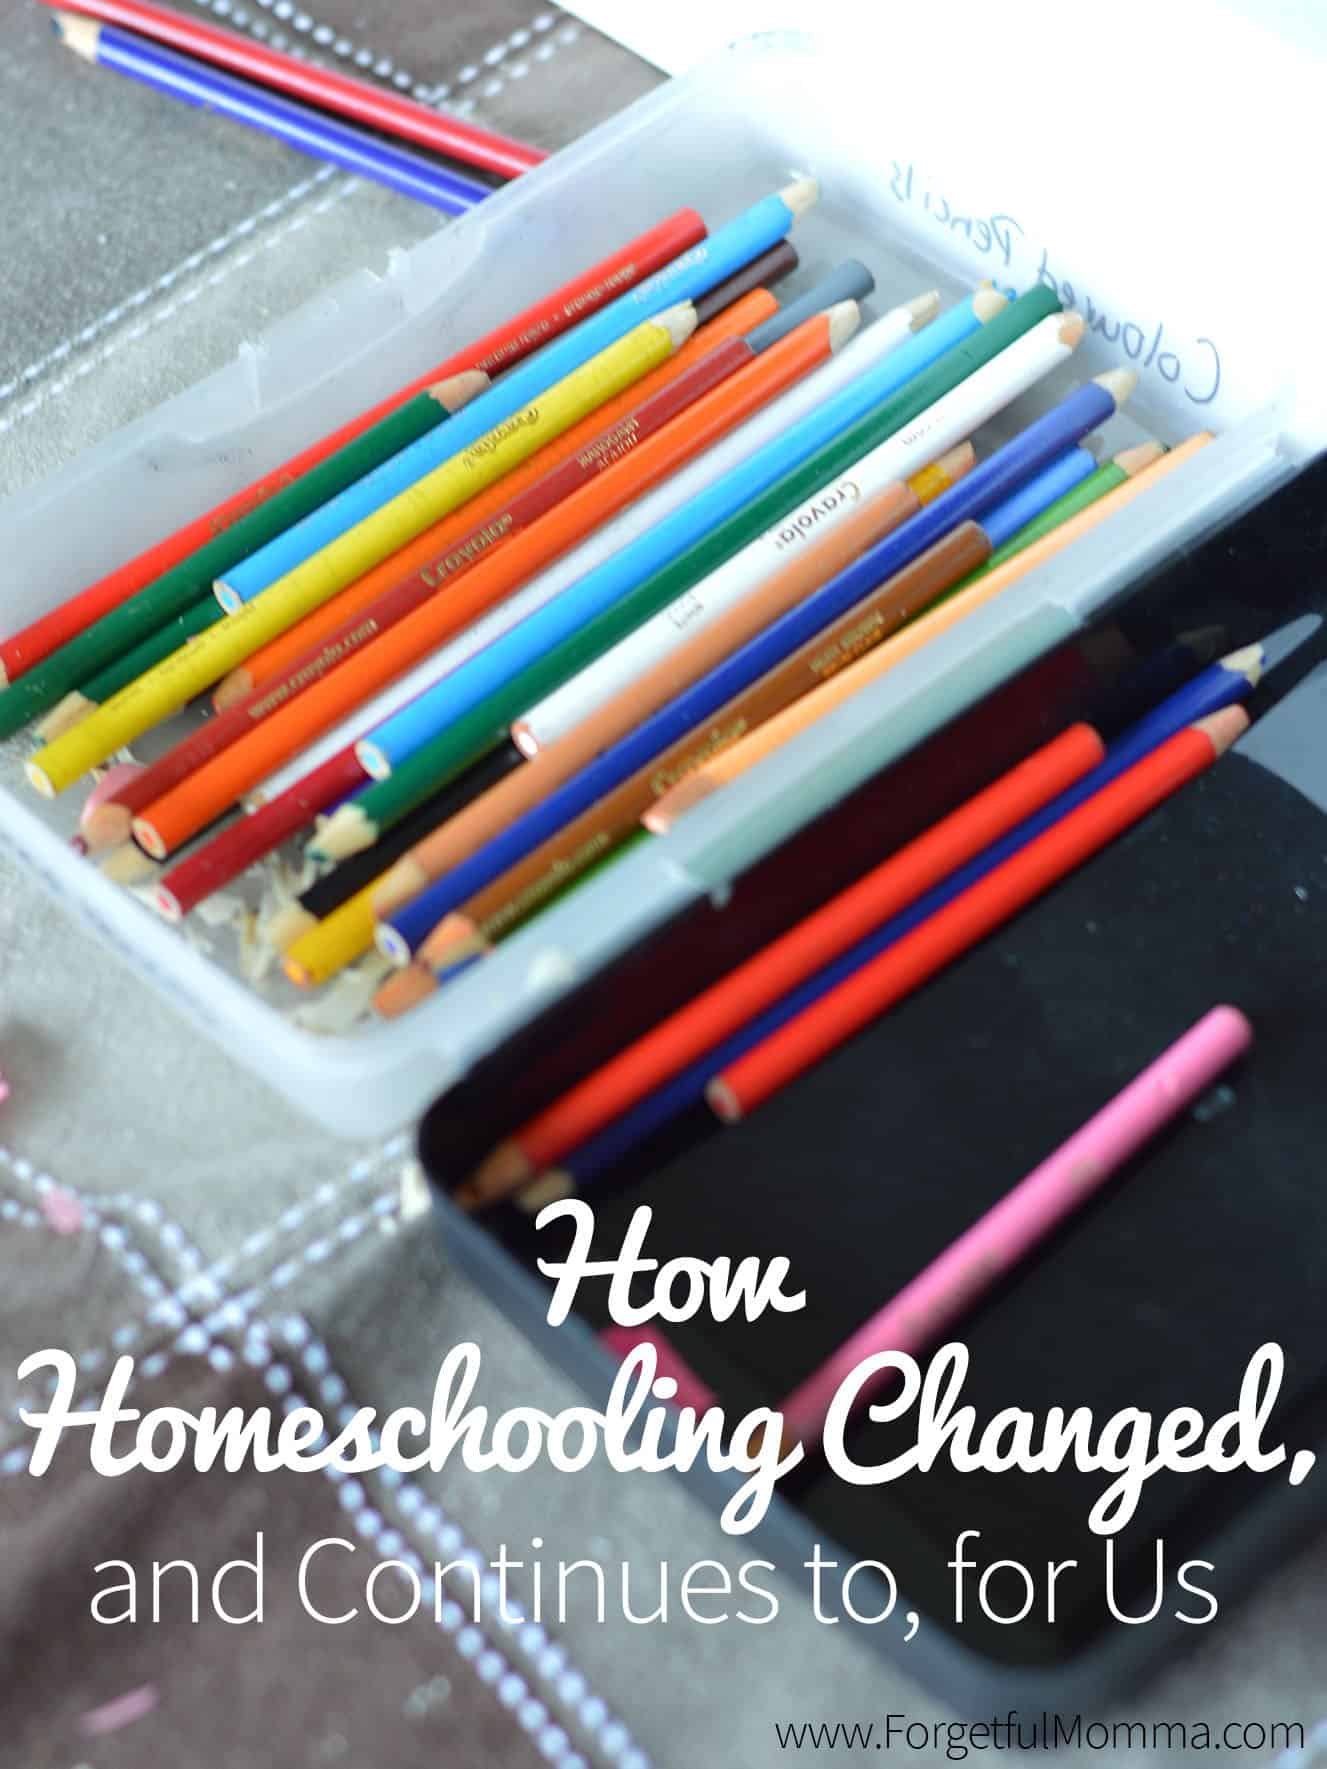 How Homeschooling has Changed, and Continues to, for Us